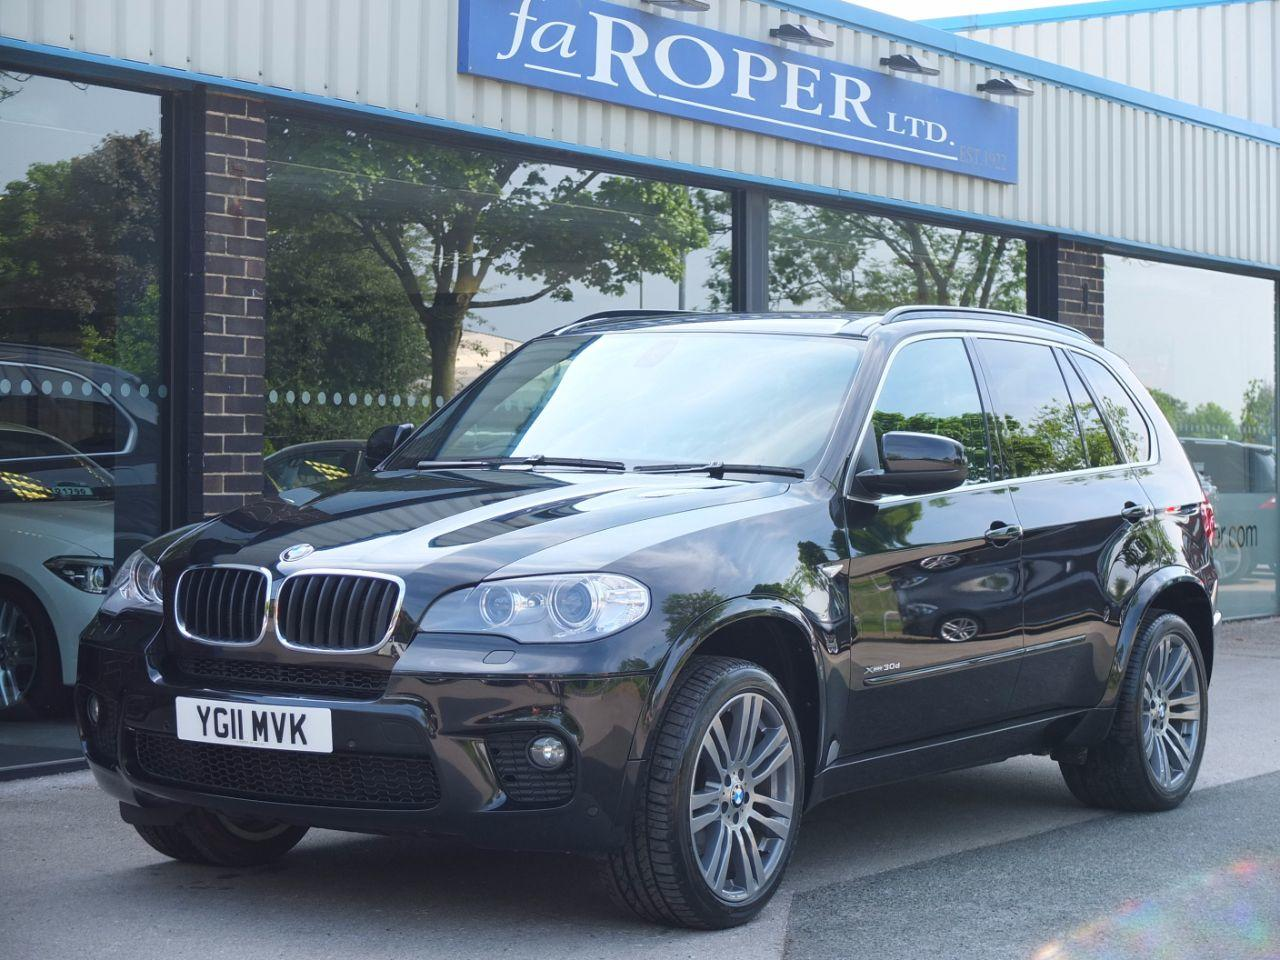 BMW X5 3.0 xDrive30d M Sport Auto Estate Diesel Black Sapphire MetallicBMW X5 3.0 xDrive30d M Sport Auto Estate Diesel Black Sapphire Metallic at fa Roper Ltd Bradford